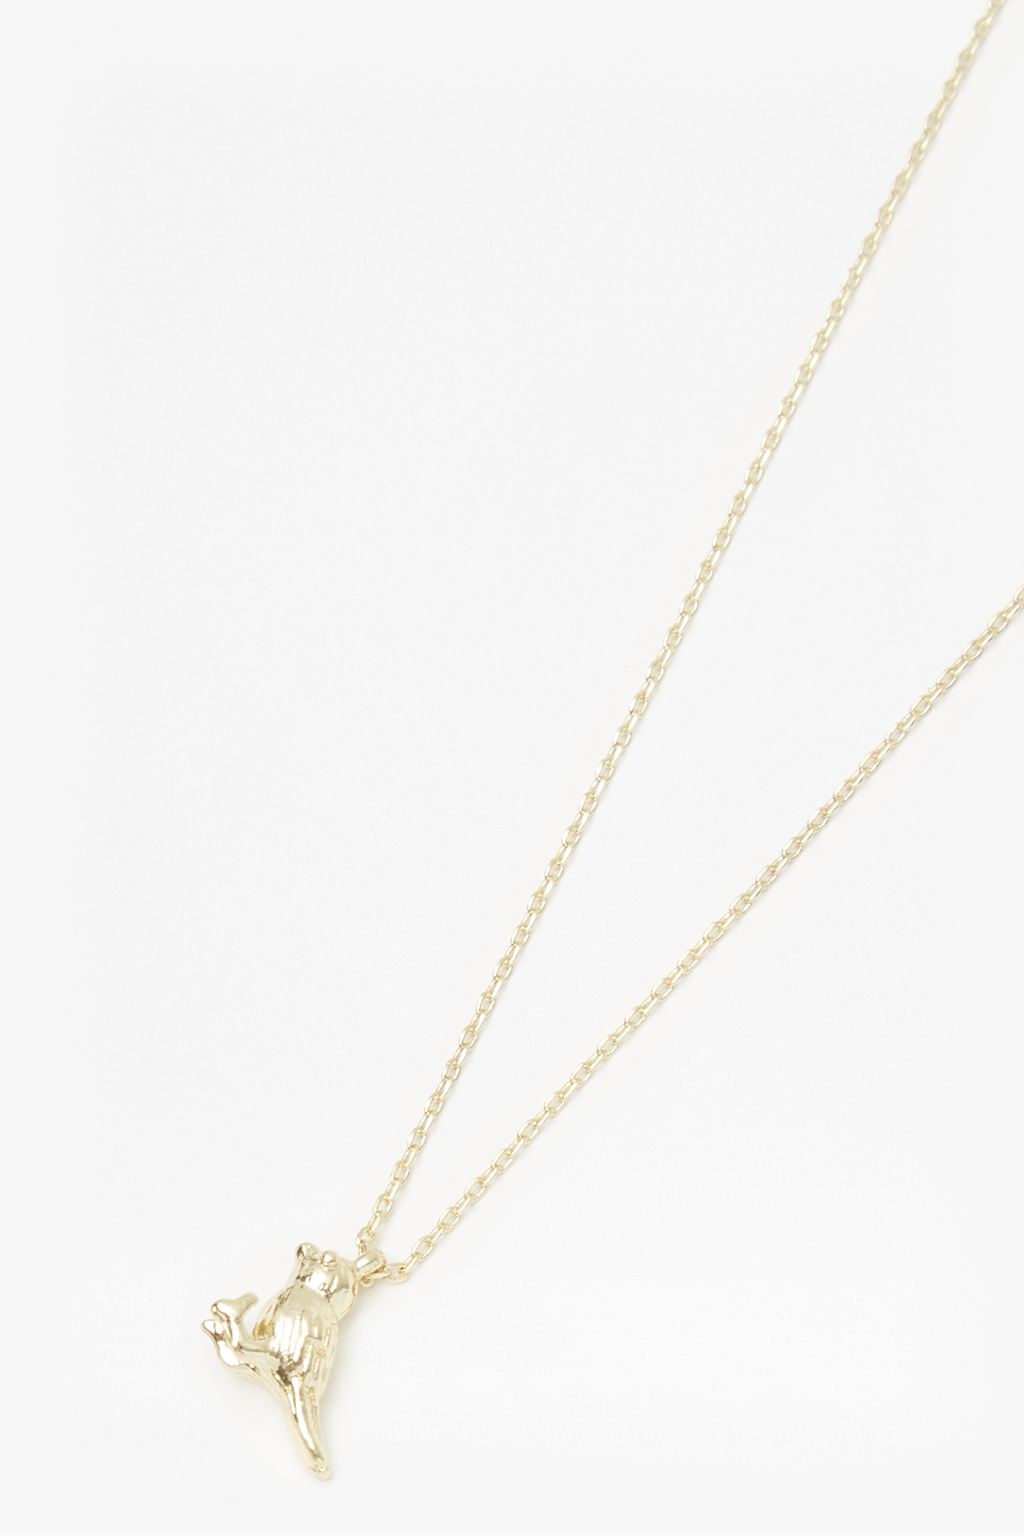 French Connection Pineapple Charm Necklace vAuMDz42